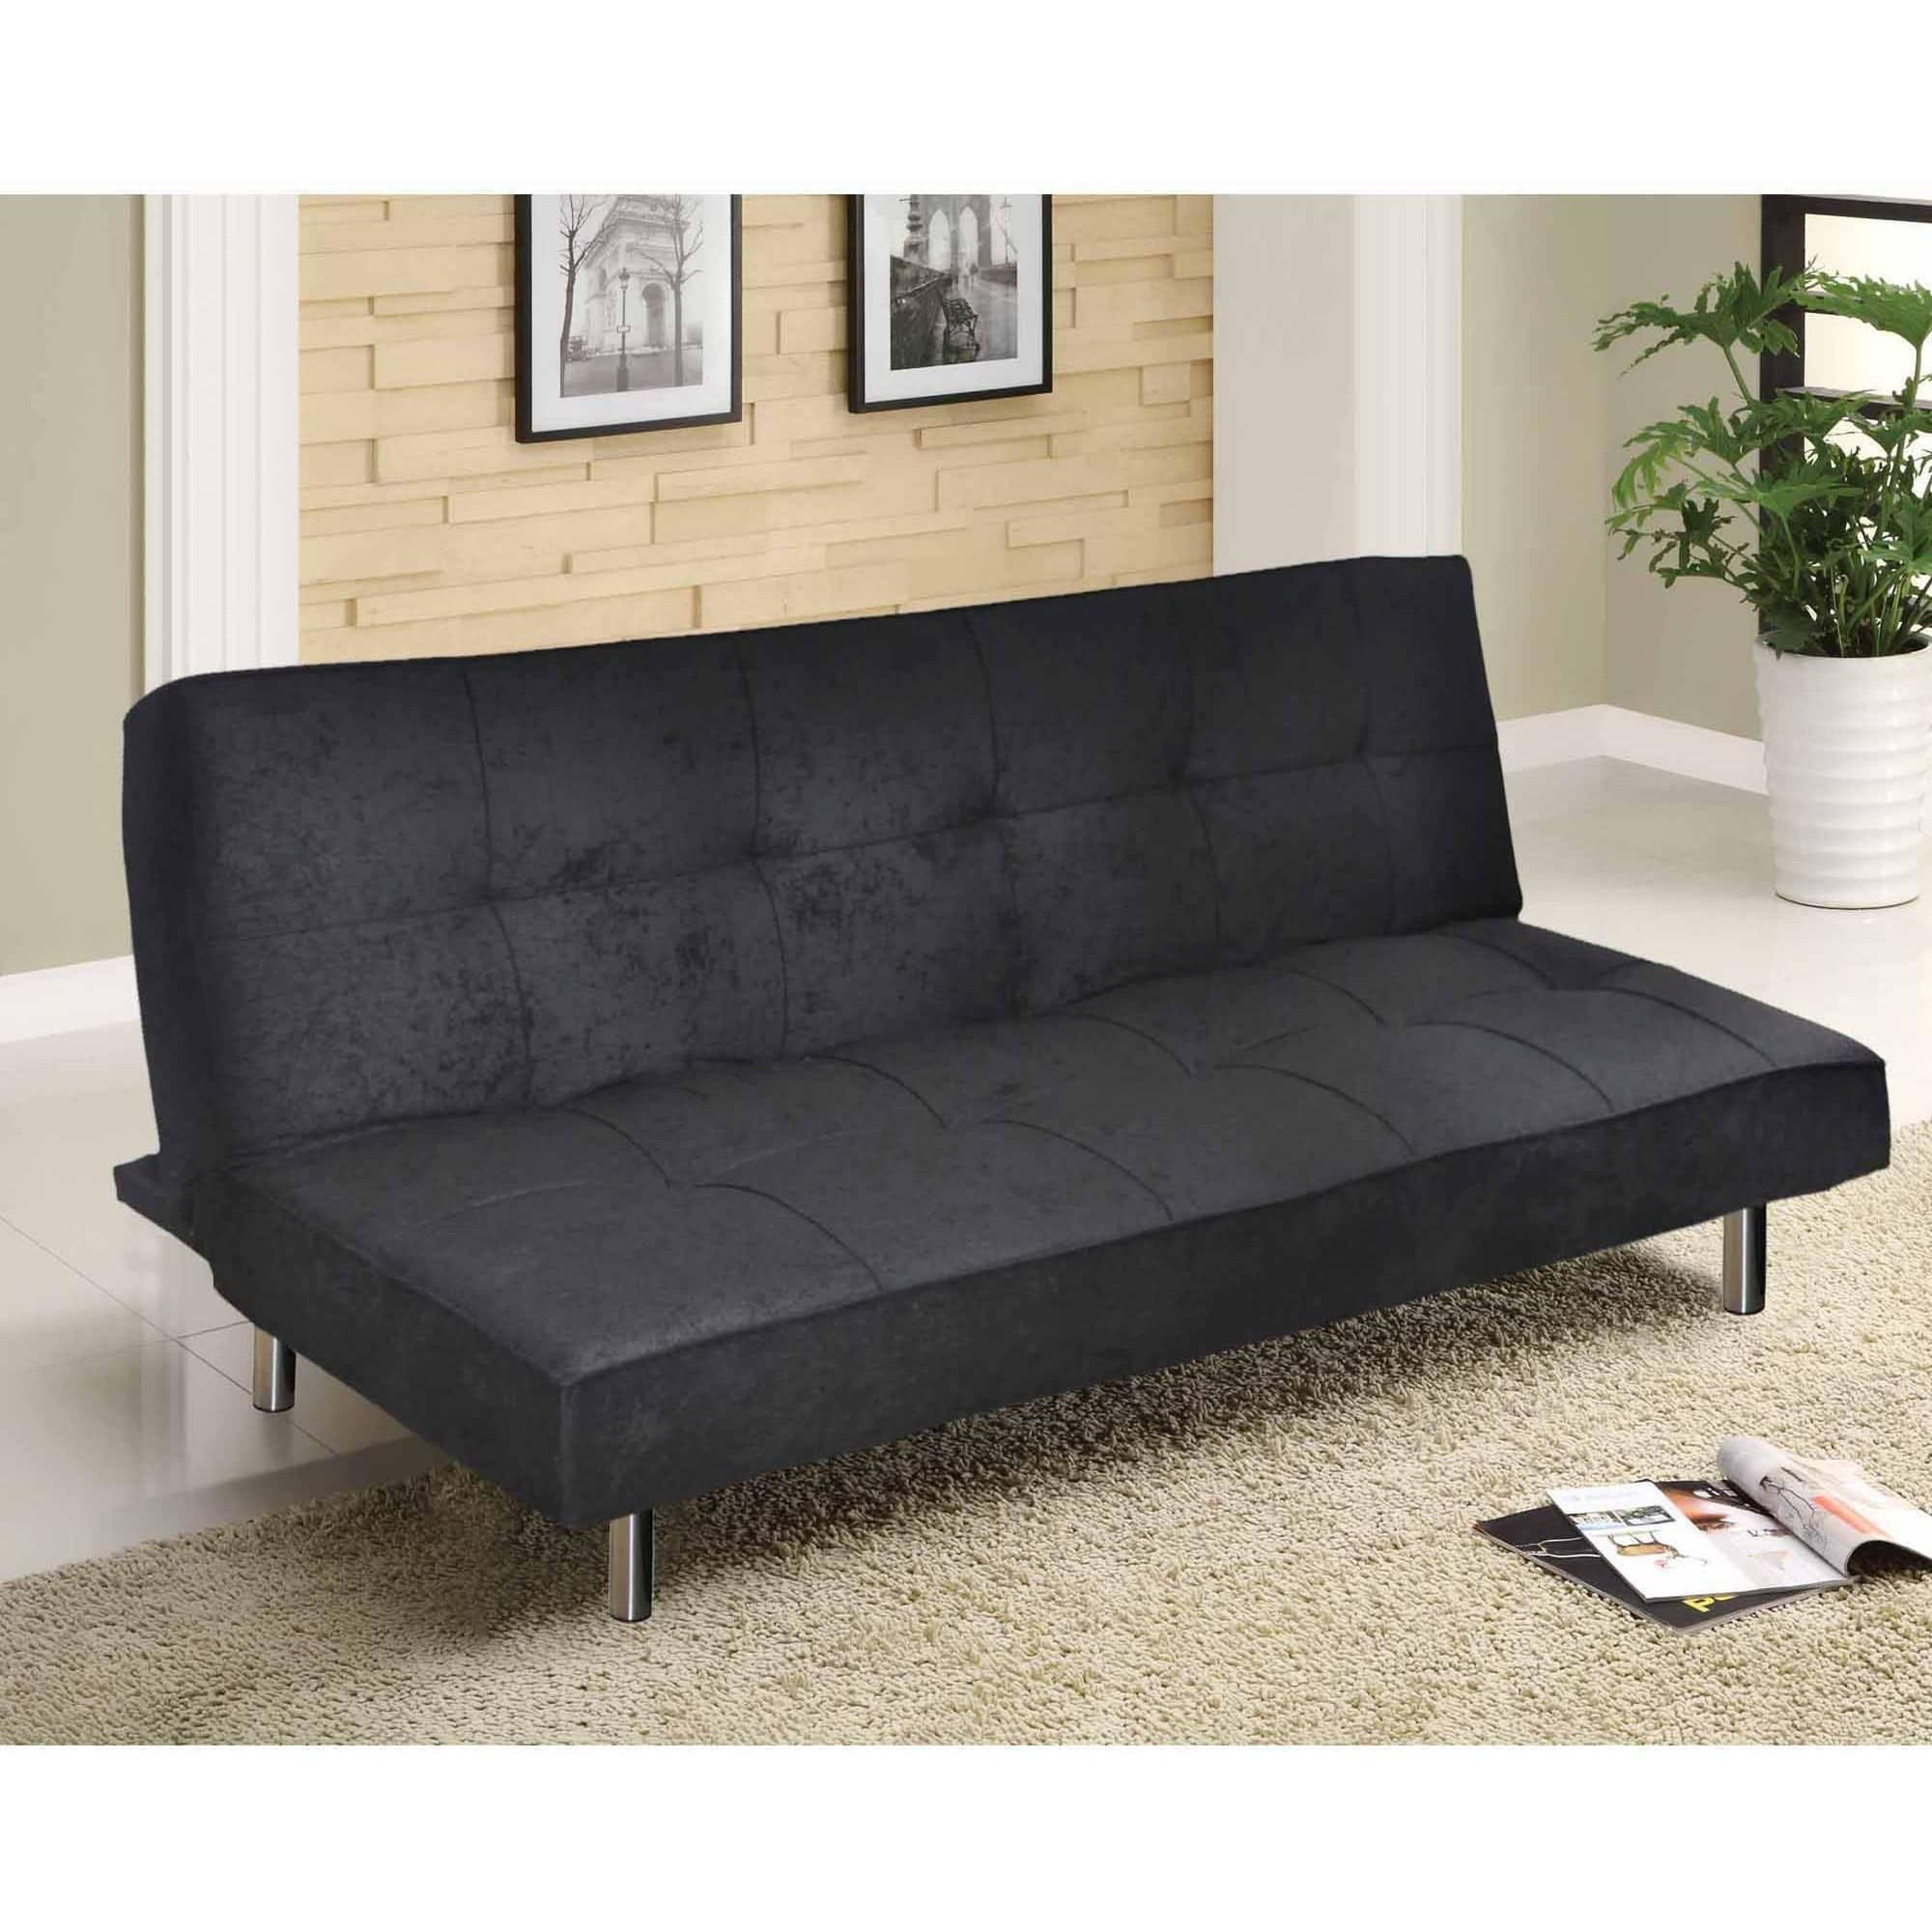 Best Choice Products Modern Entertainment Futon Sofa Bed Fold Up For Futon Couch Beds (View 13 of 20)